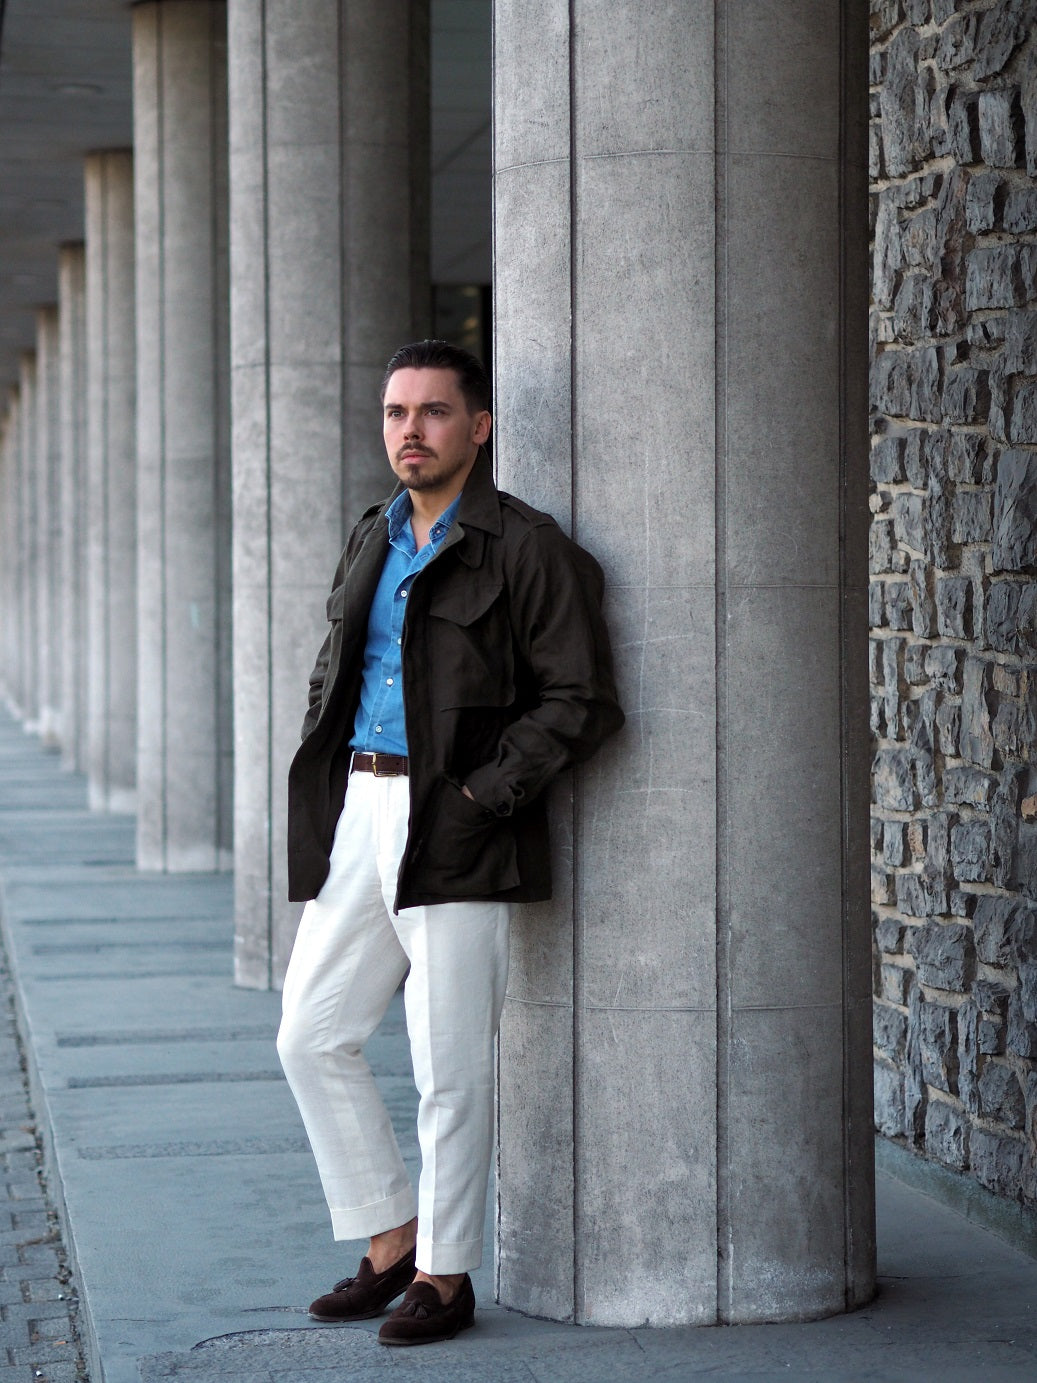 The M-43 field jacket - white linen slacks with the olive green jacket and denim shirt